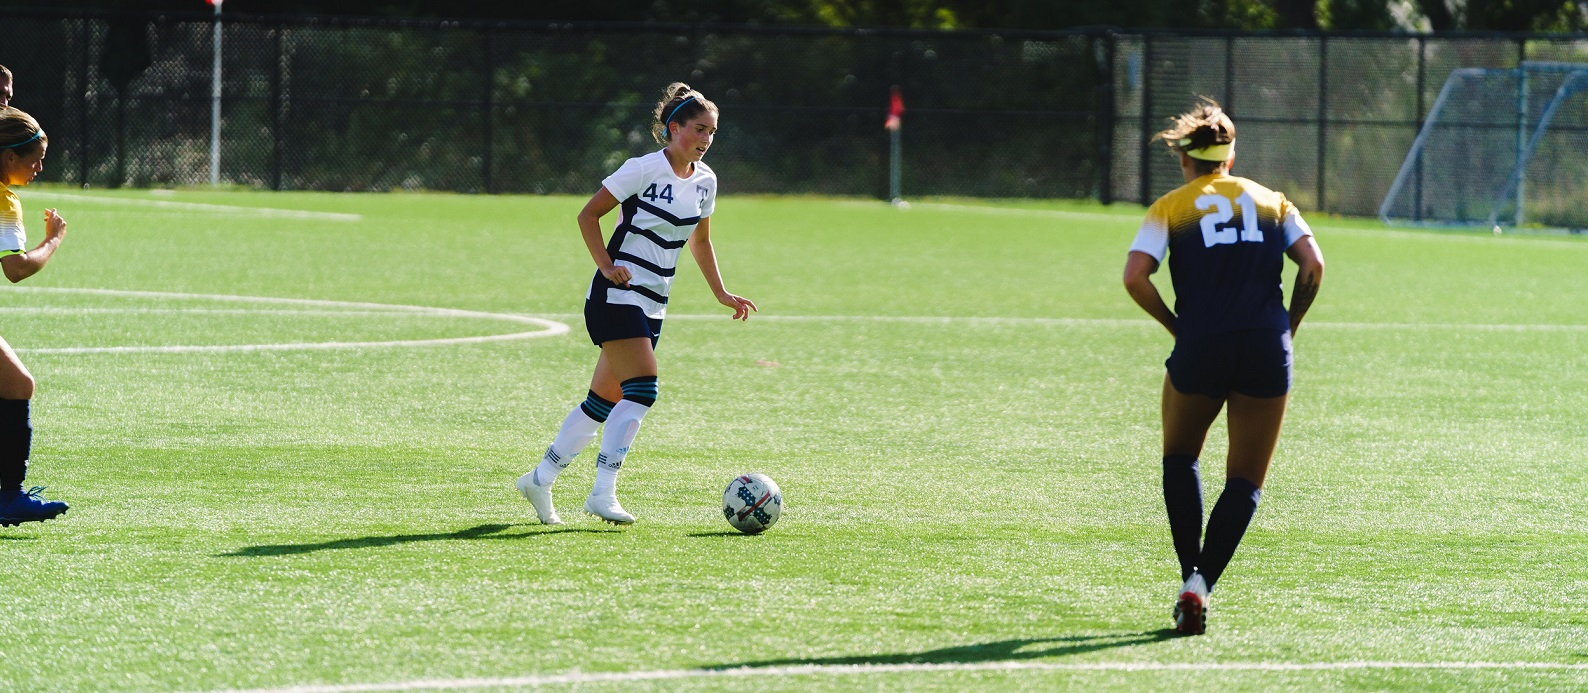 Hopkins scores two to help beat Fighting Saints